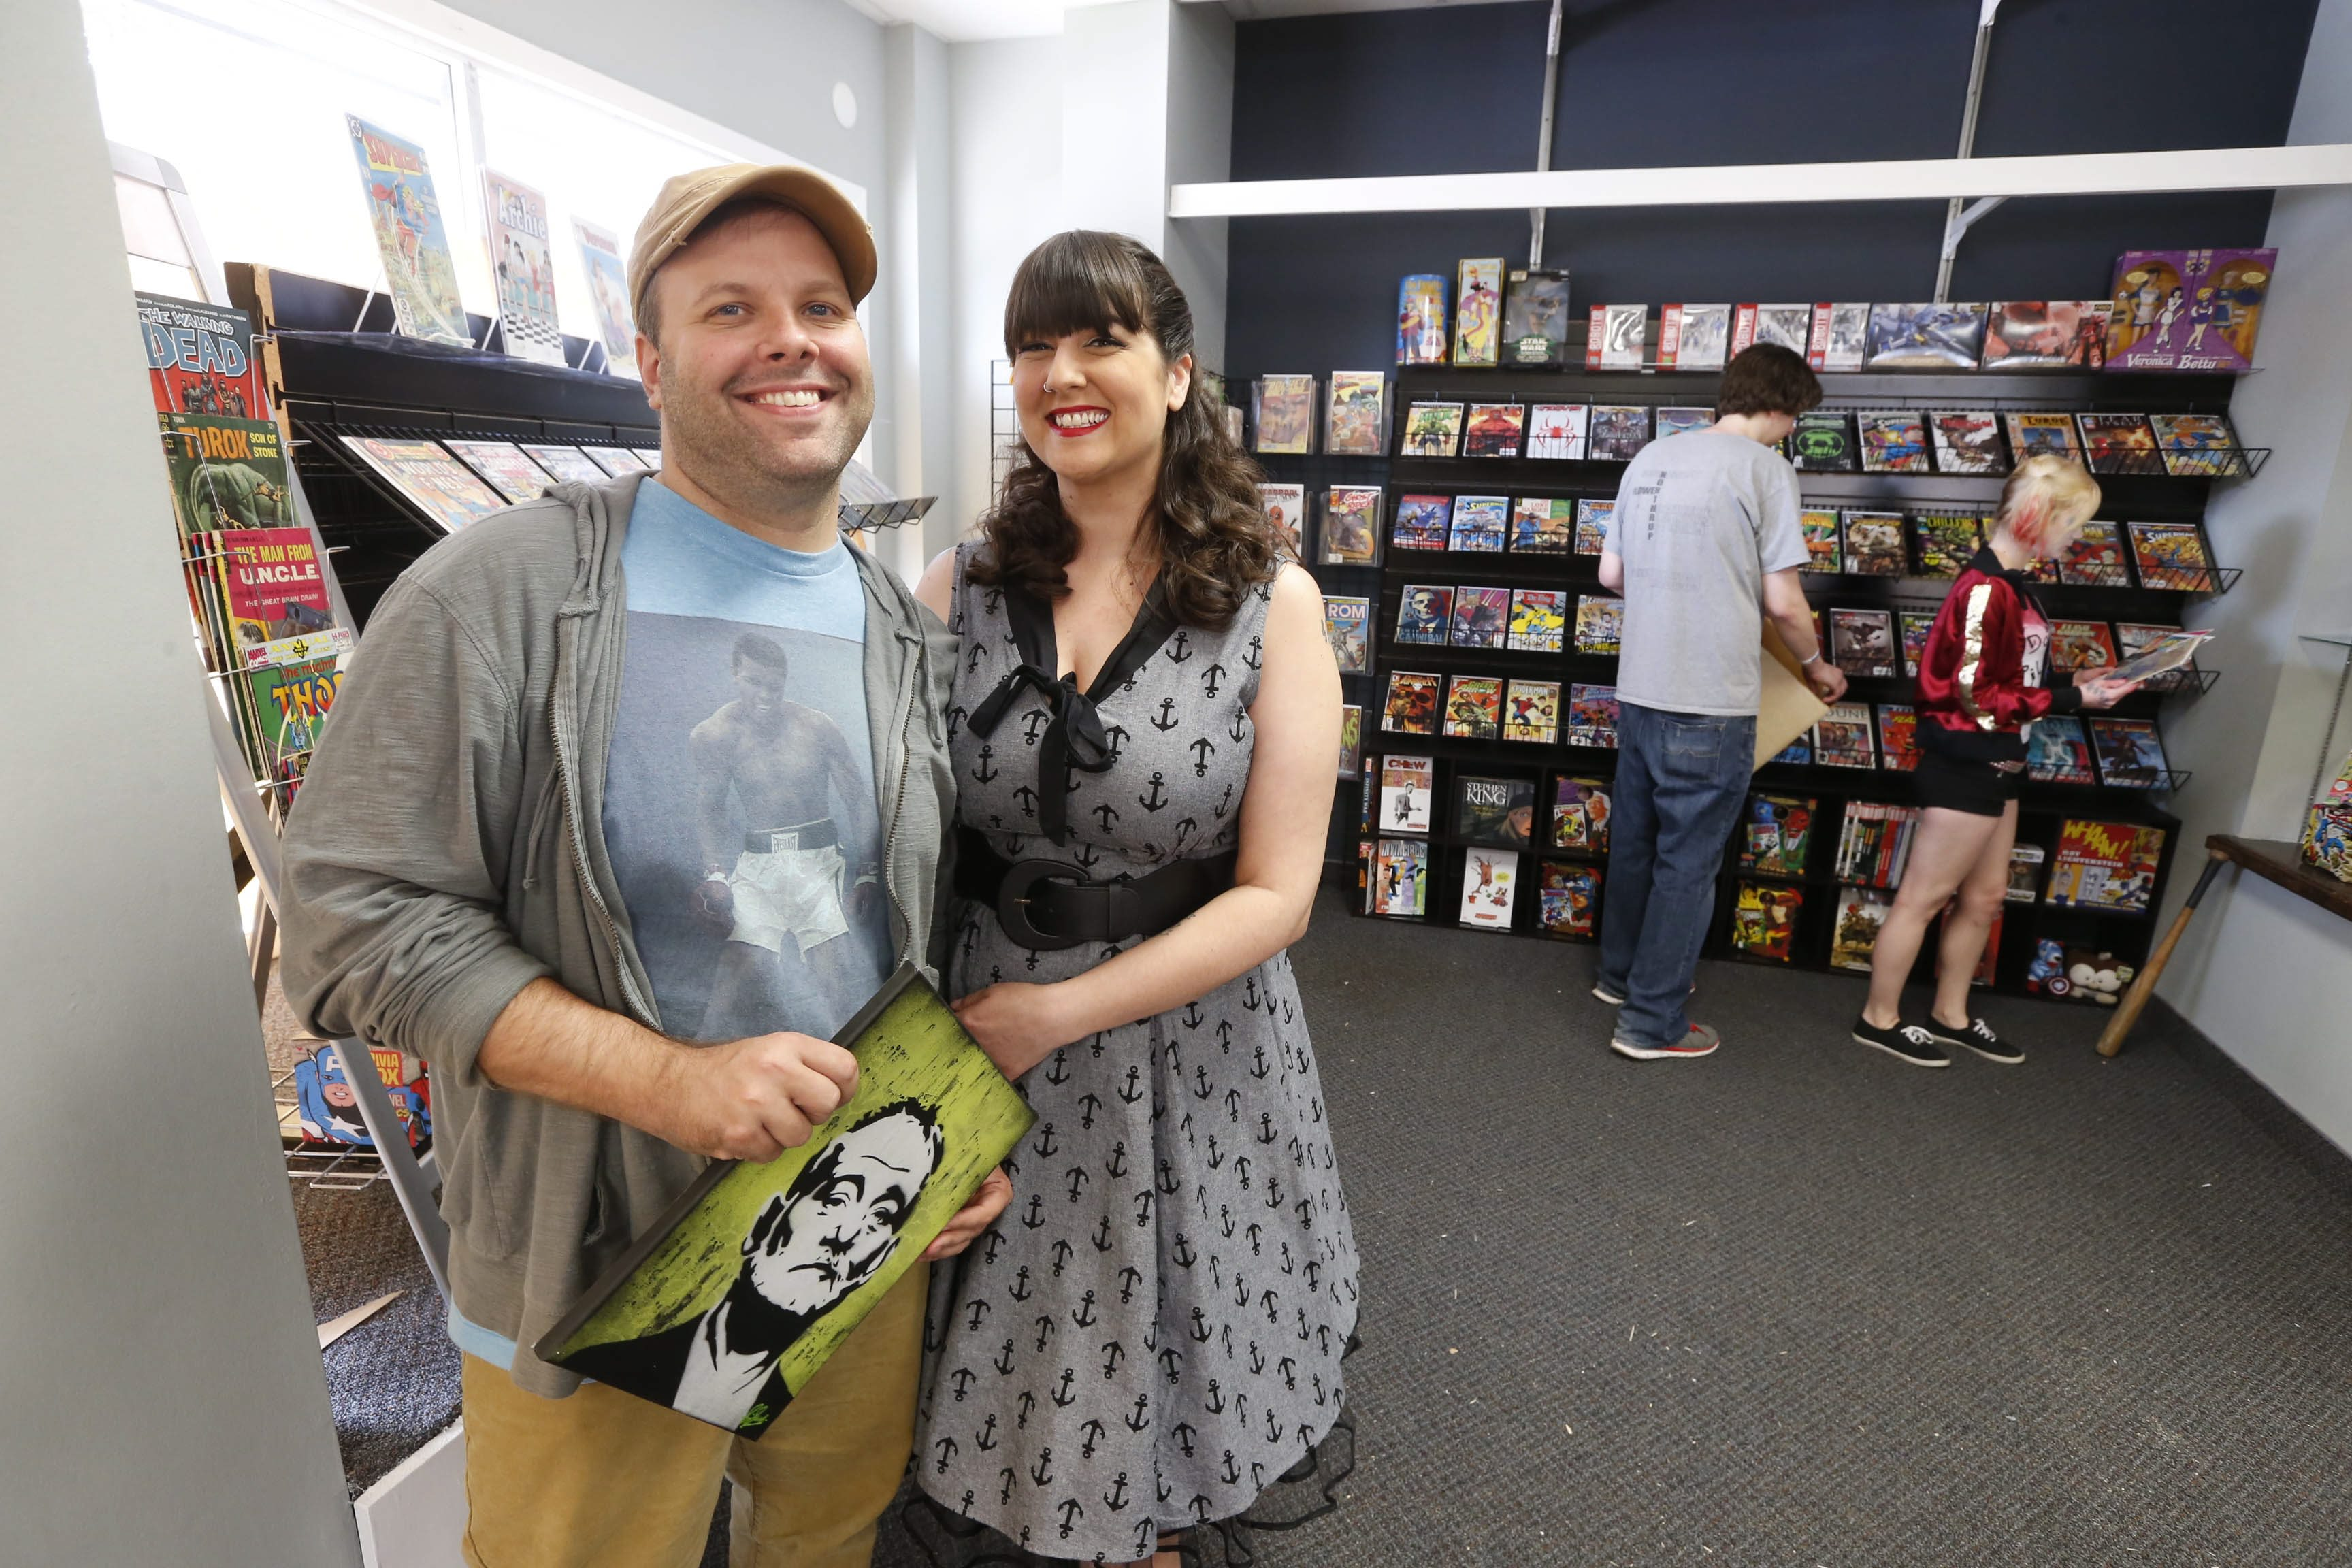 Pulp 716 owners Amy and Jay Berent at their Lockport location. (Robert Kirkham/Buffalo News)